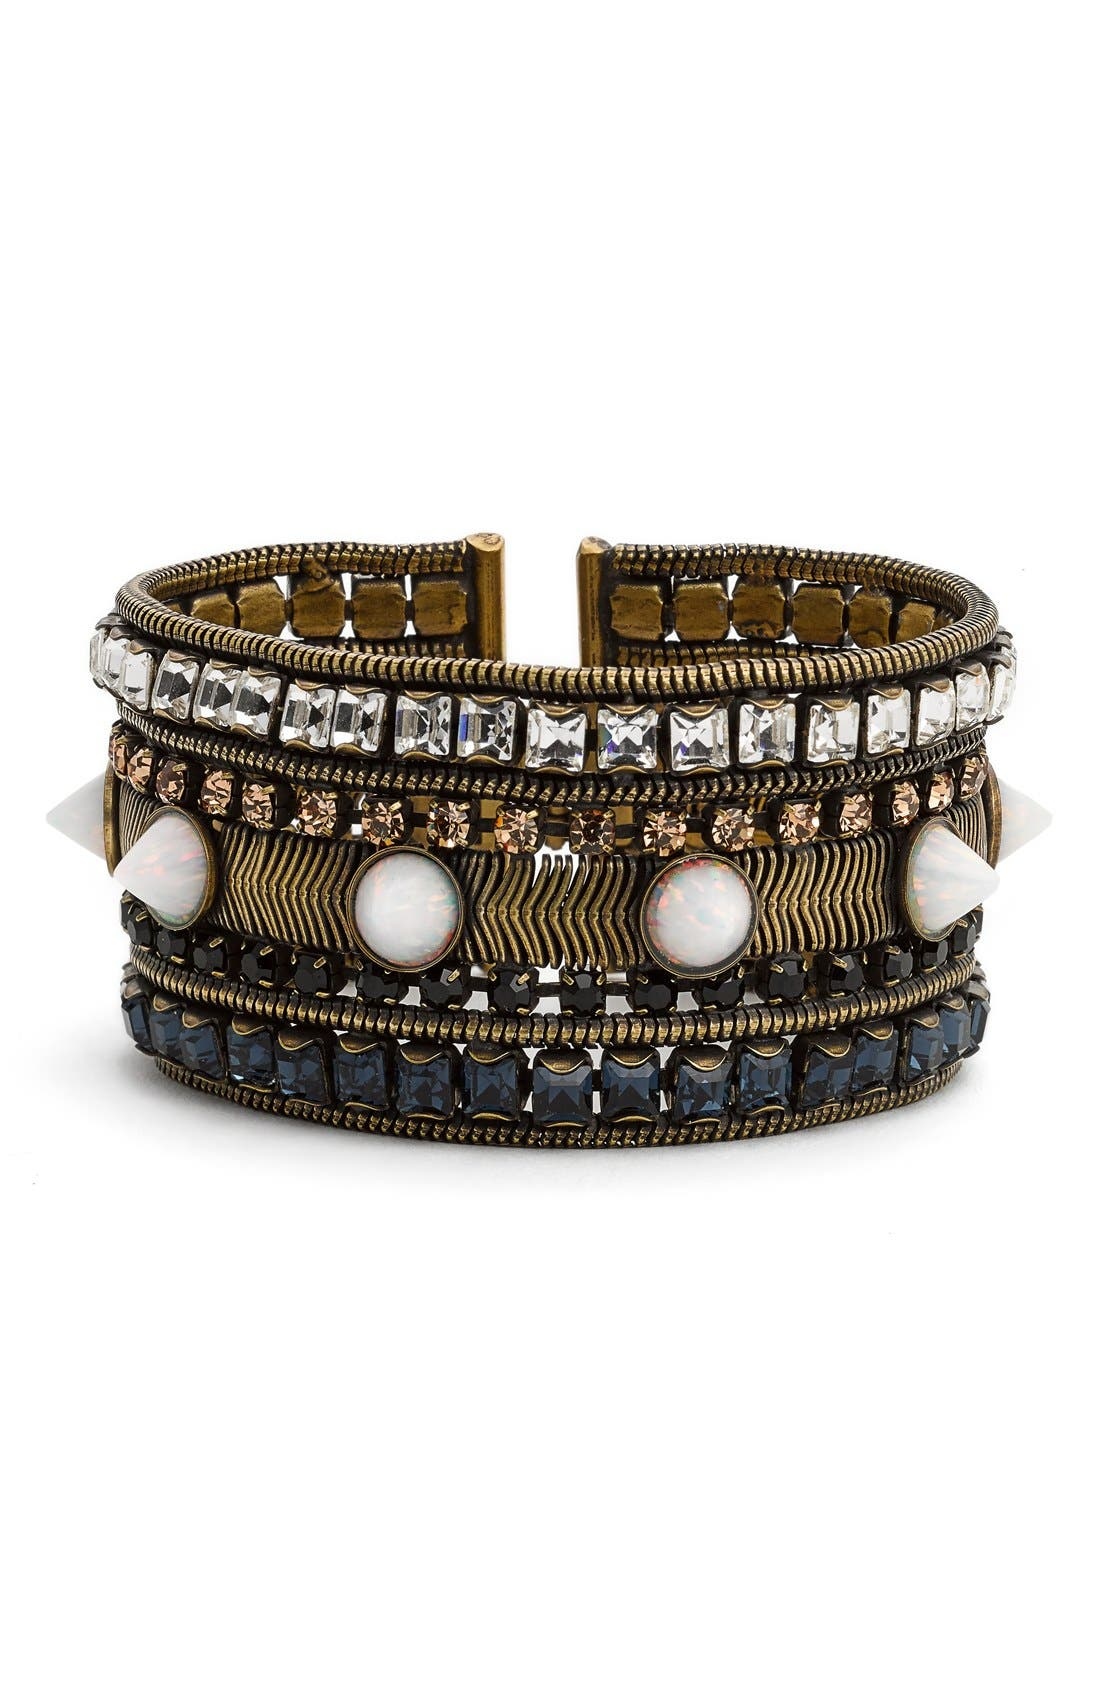 Main Image - Lionette by Noa Sade 'Miles' Spike Cuff